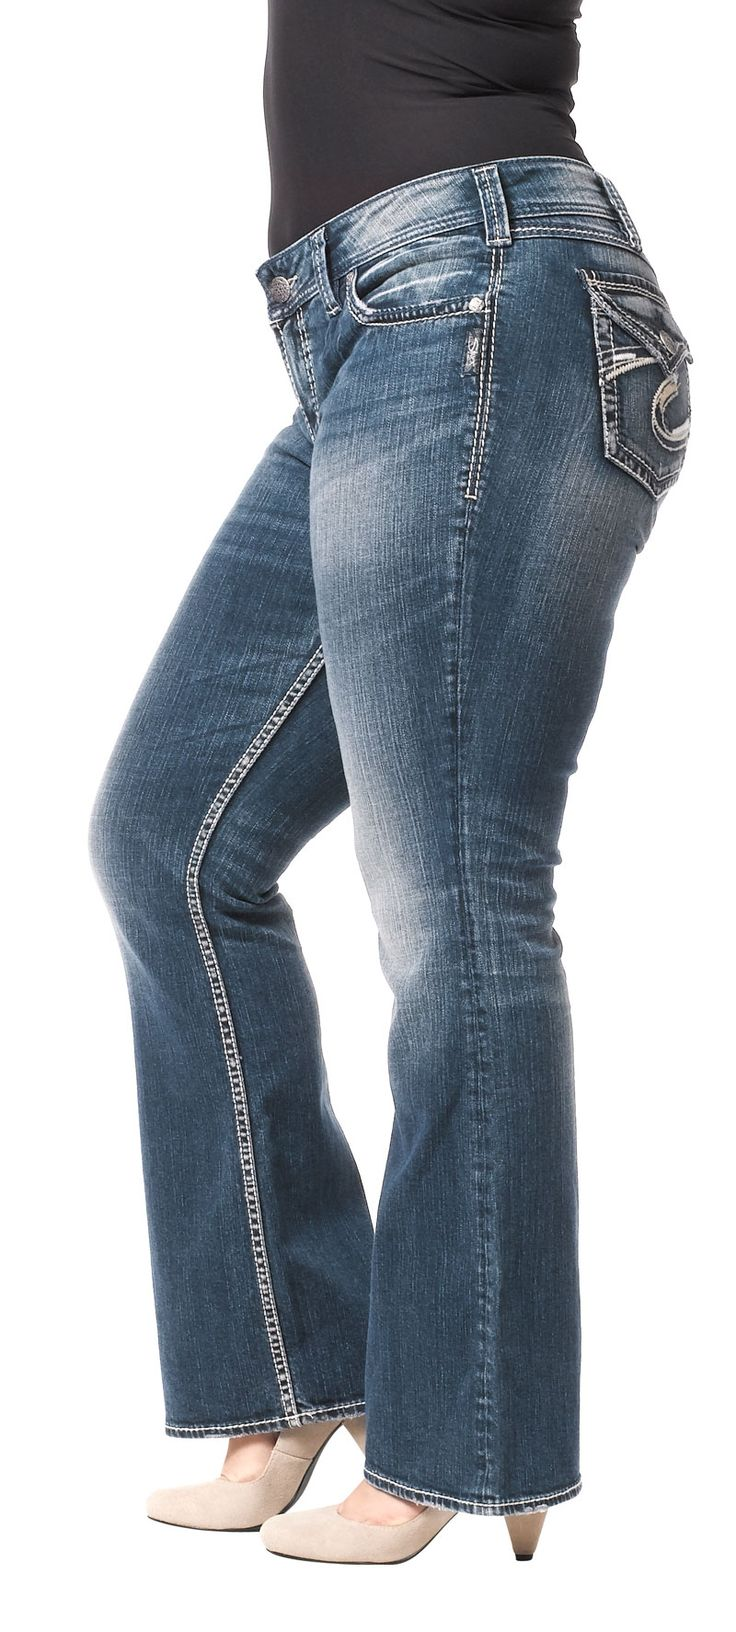 silver plus size jeans 5 best outfits - silver-plus-size-jeans-5-best-outfits